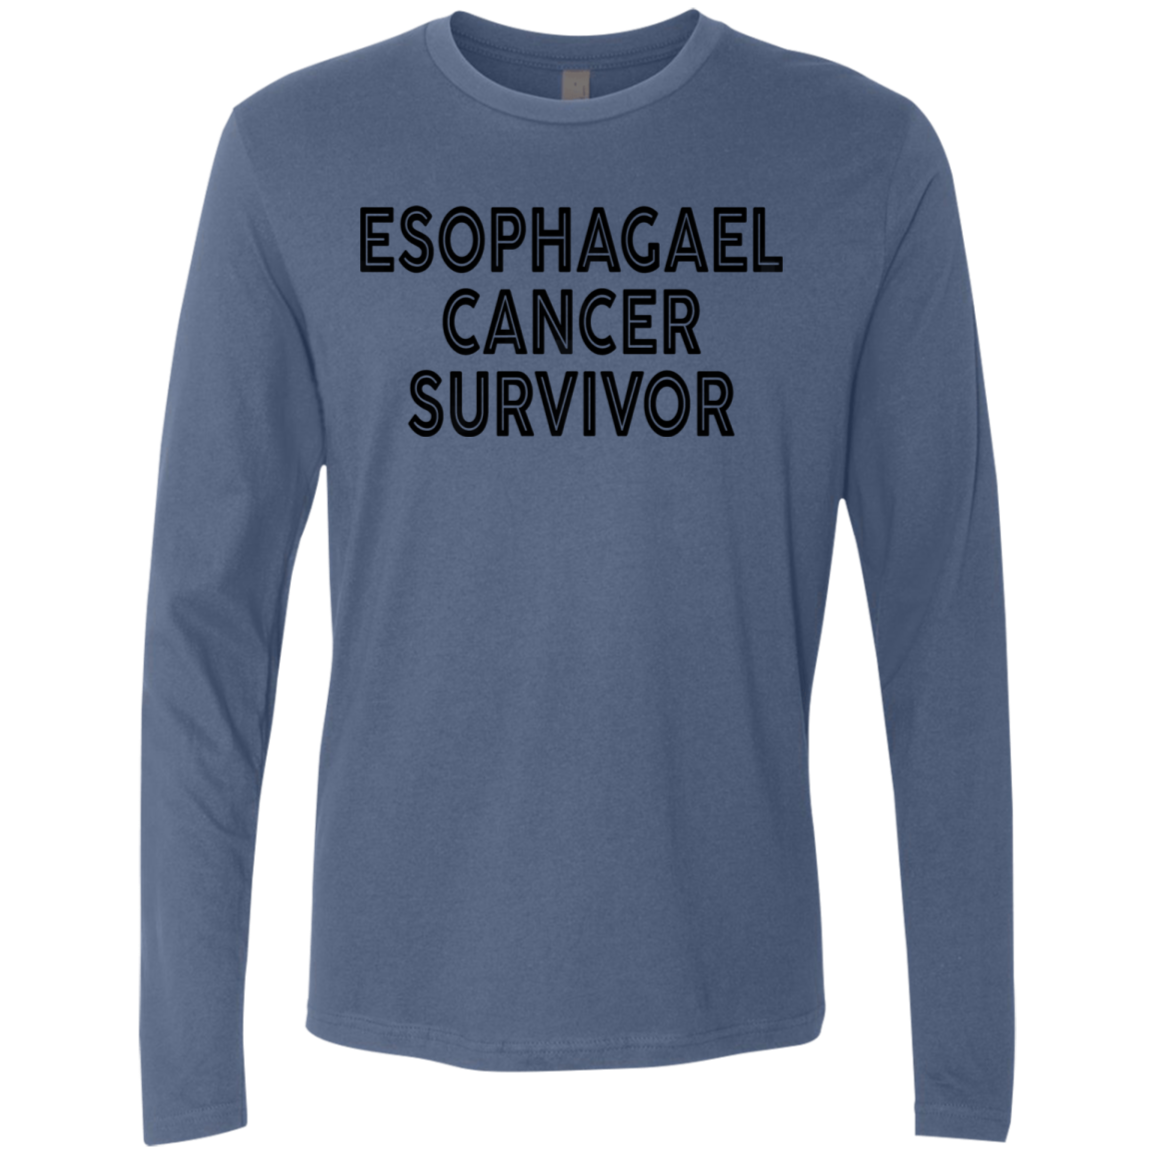 Esophagael Cancer Survivor Men's Long Sleeve Tee